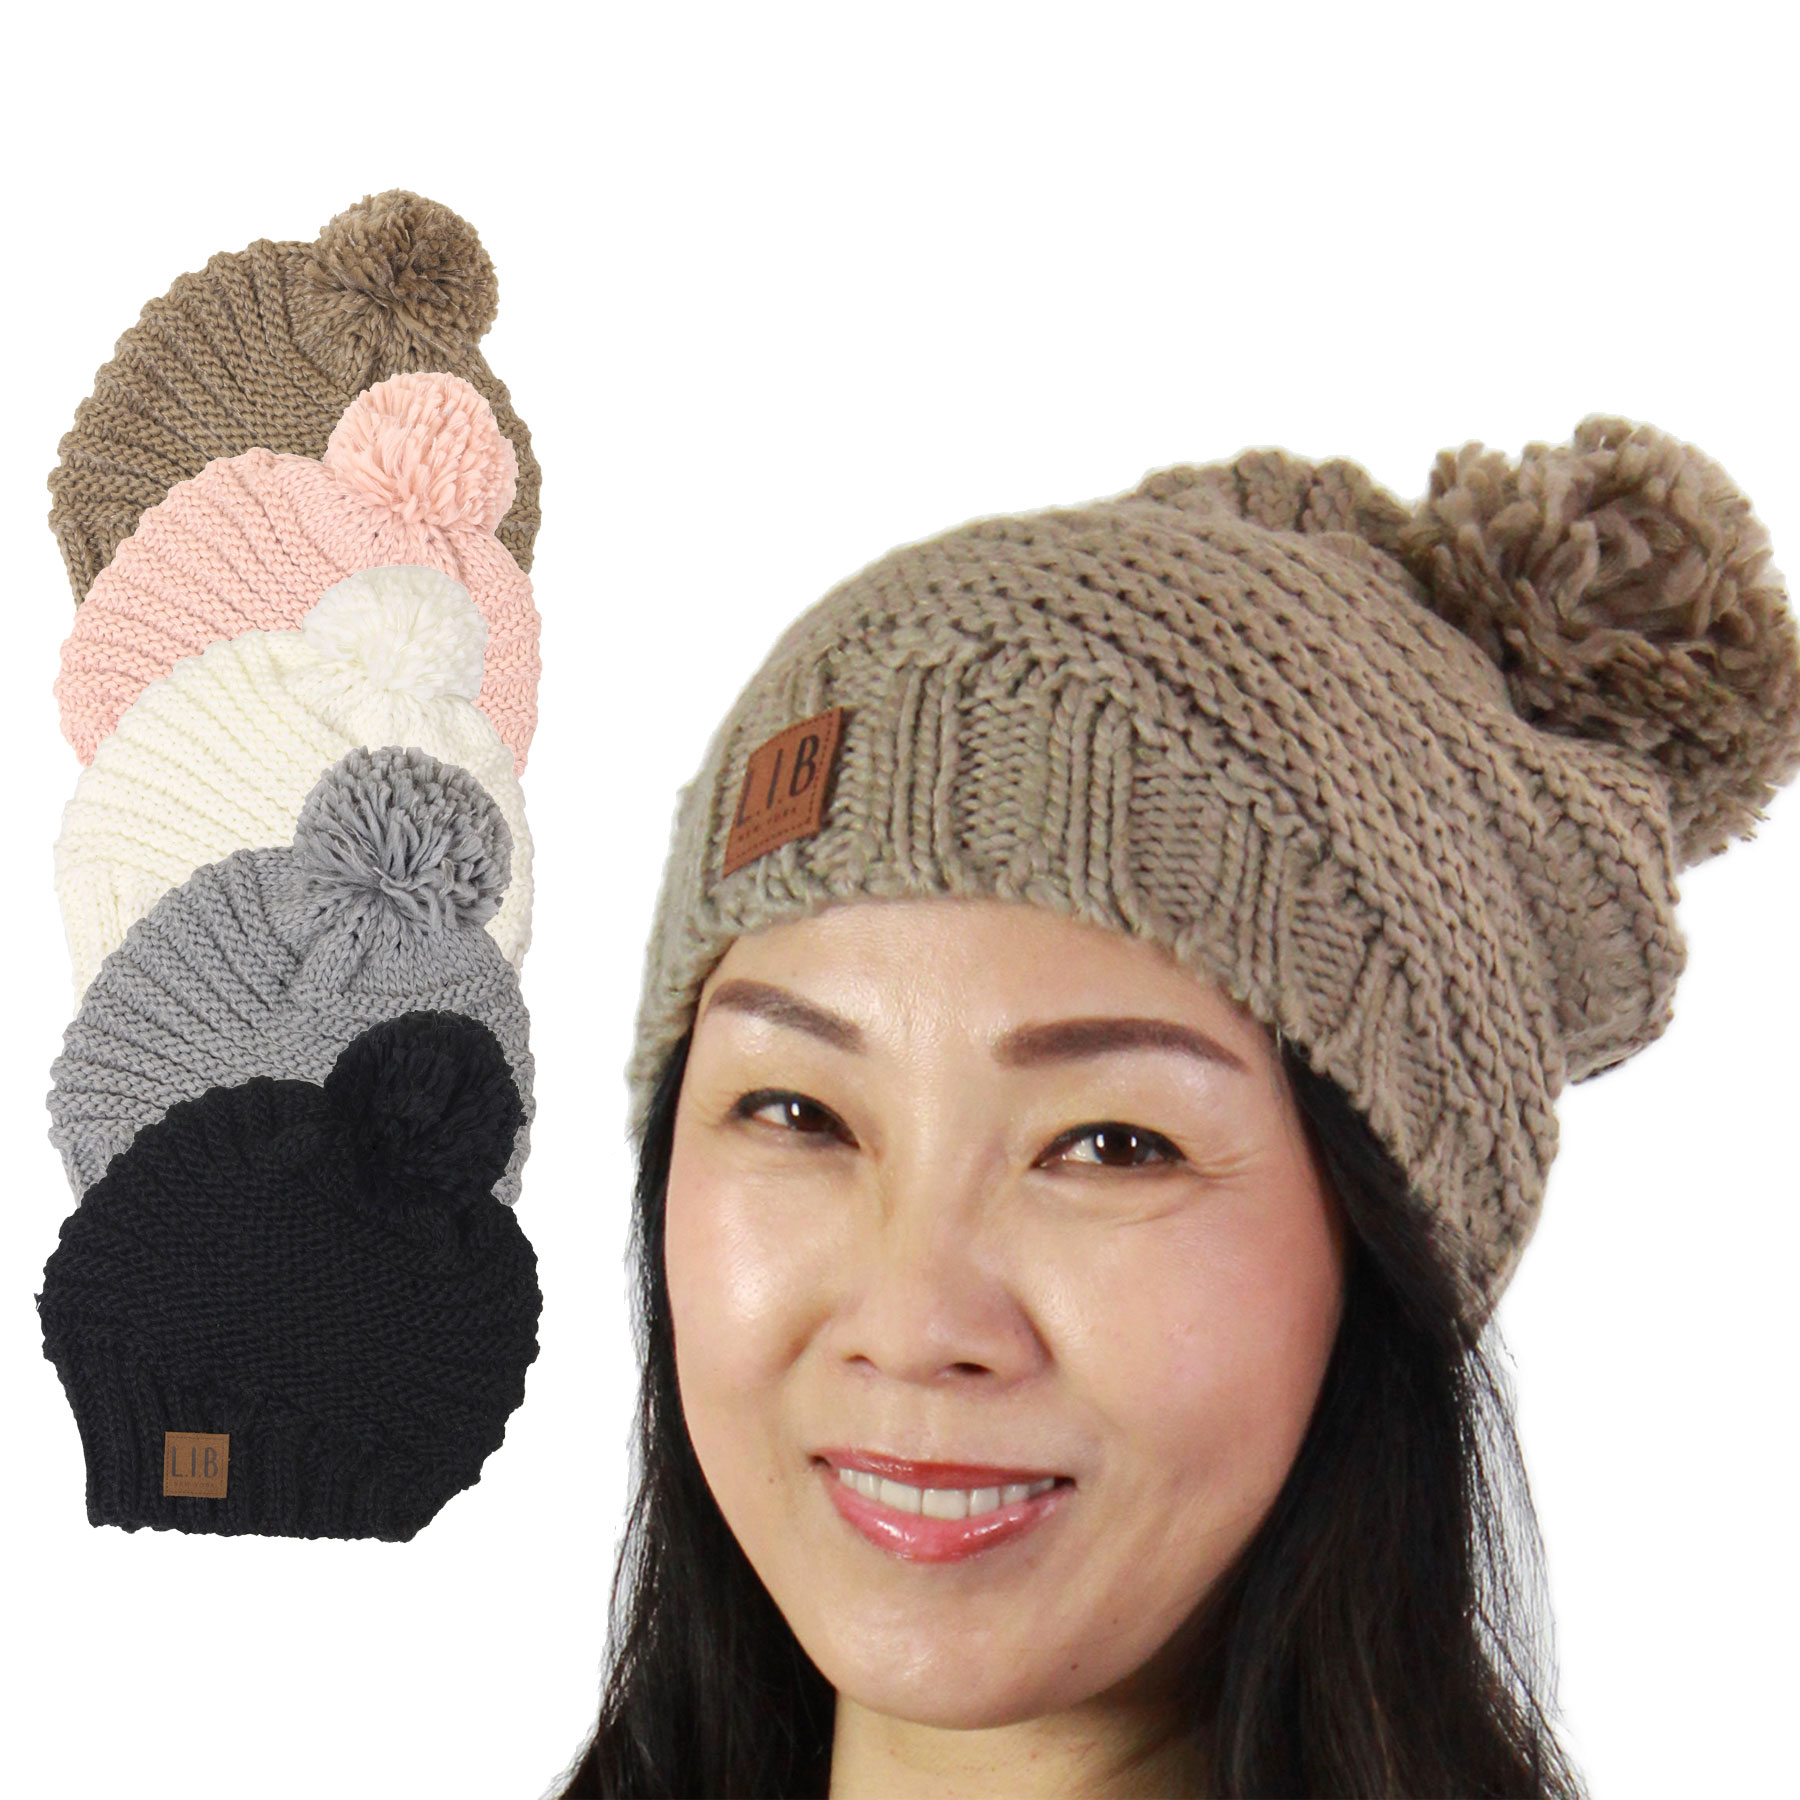 Hats - Stripe Knit with Pom Pom 9180